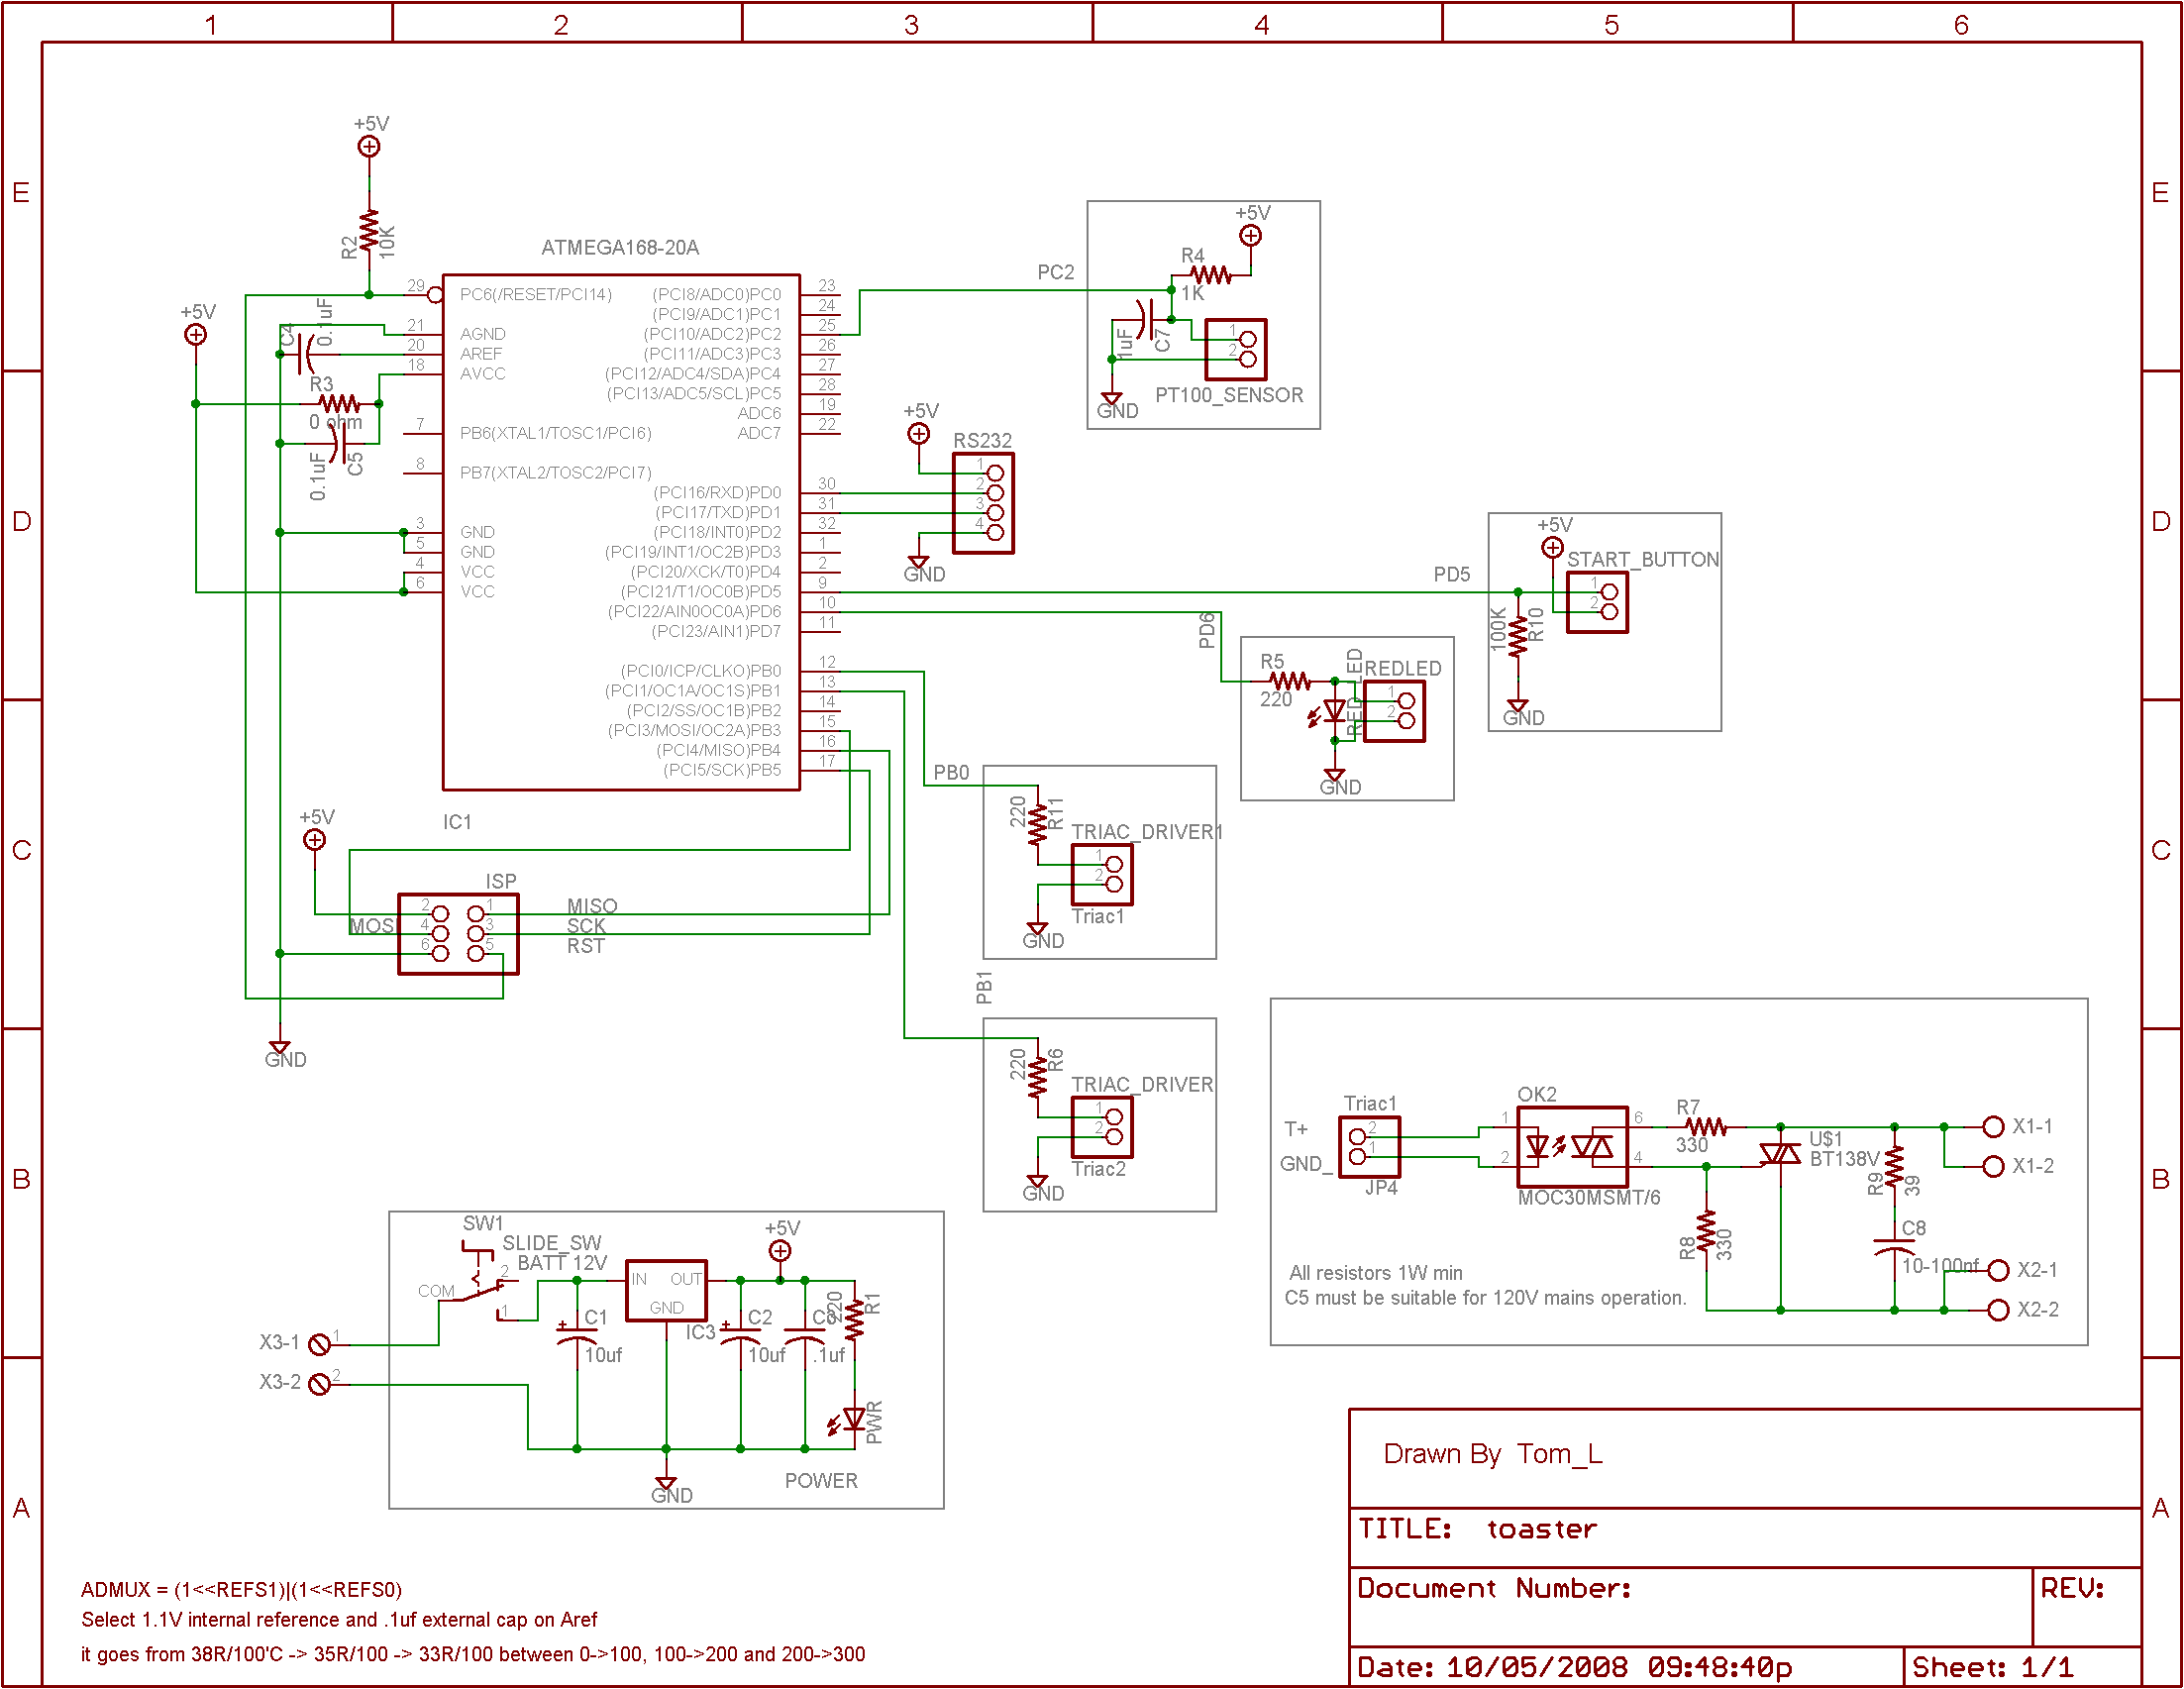 Recent Projects Toaster Wiring Schematic Getting Started With Usbtiny For 10pin Isp